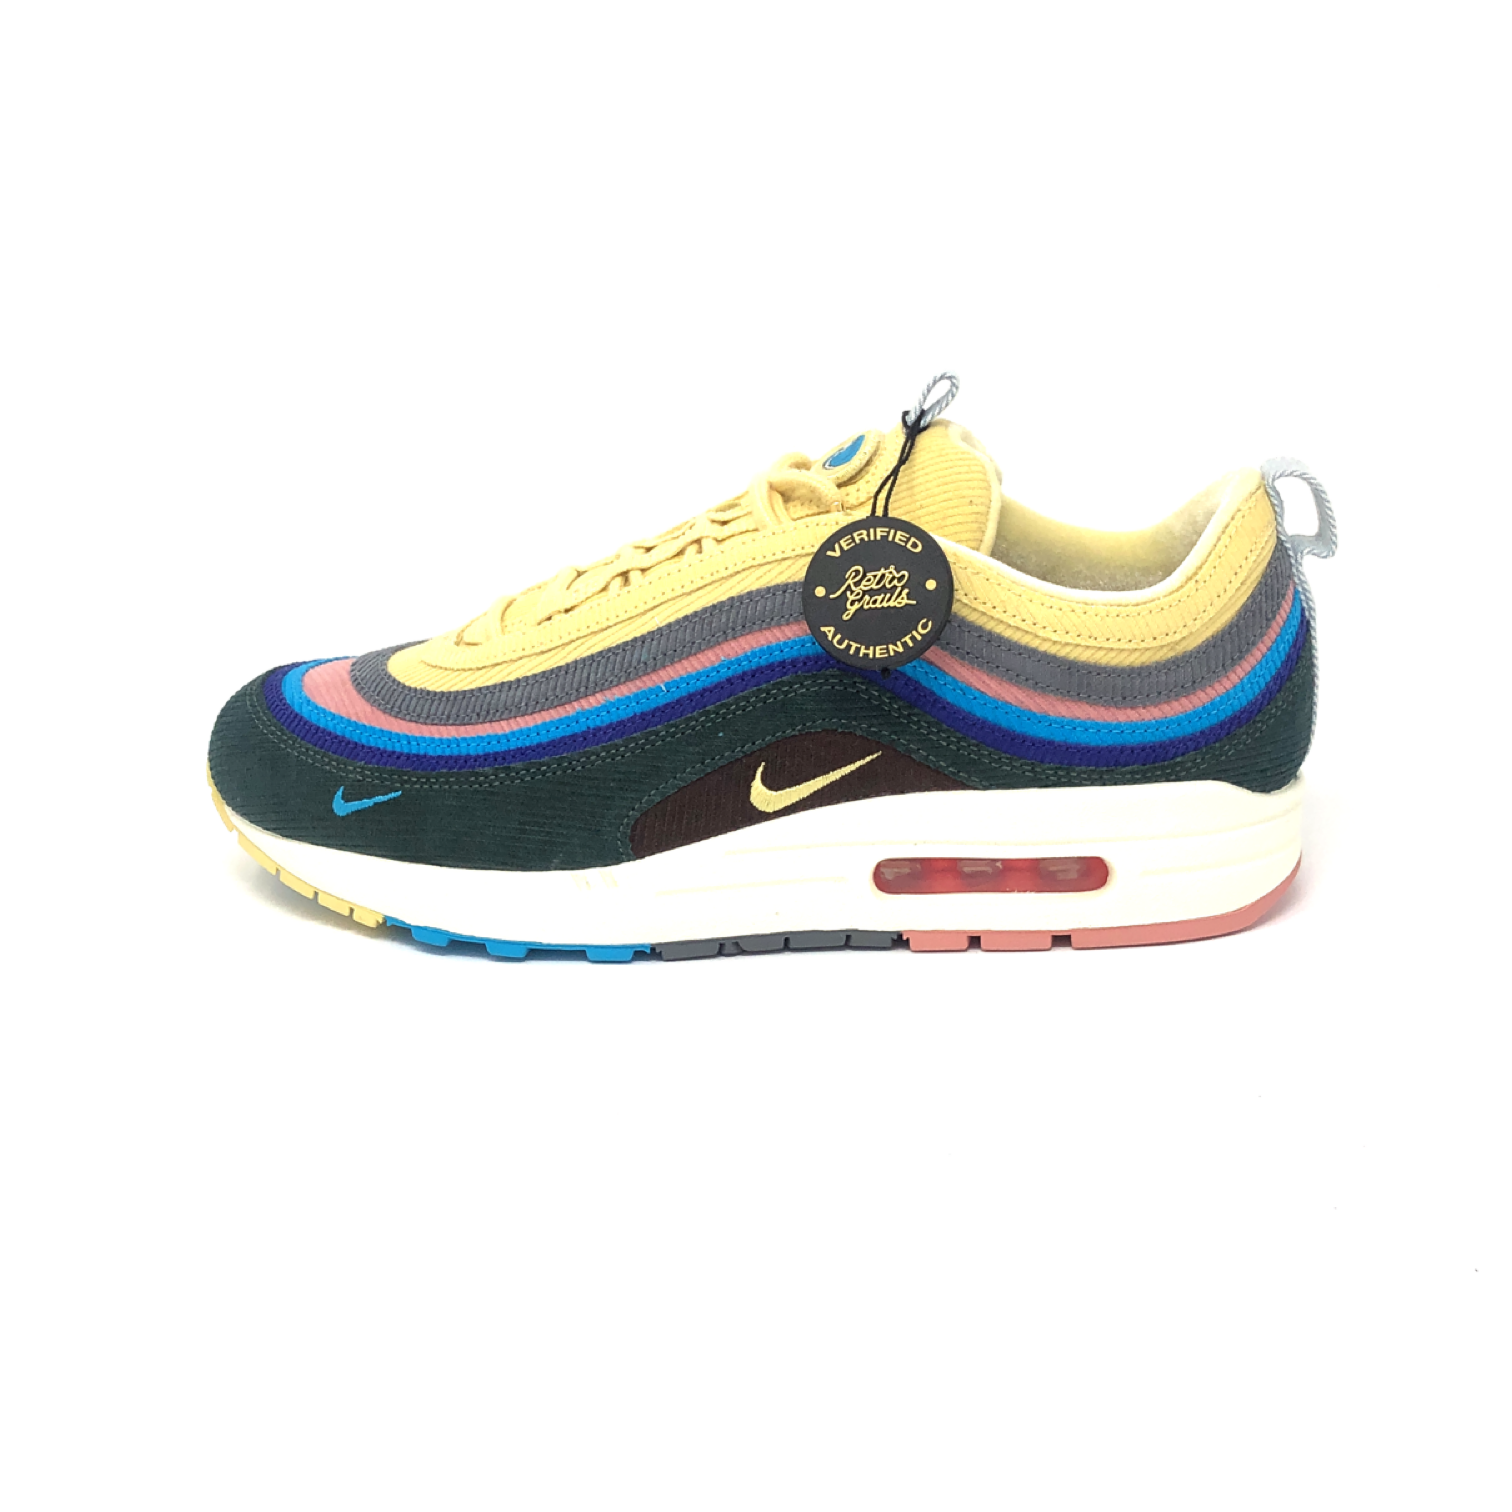 los angeles 45a12 5246b Nike Air Max 1/97 Sean Wotherspoon (Extra Lace Set Only)